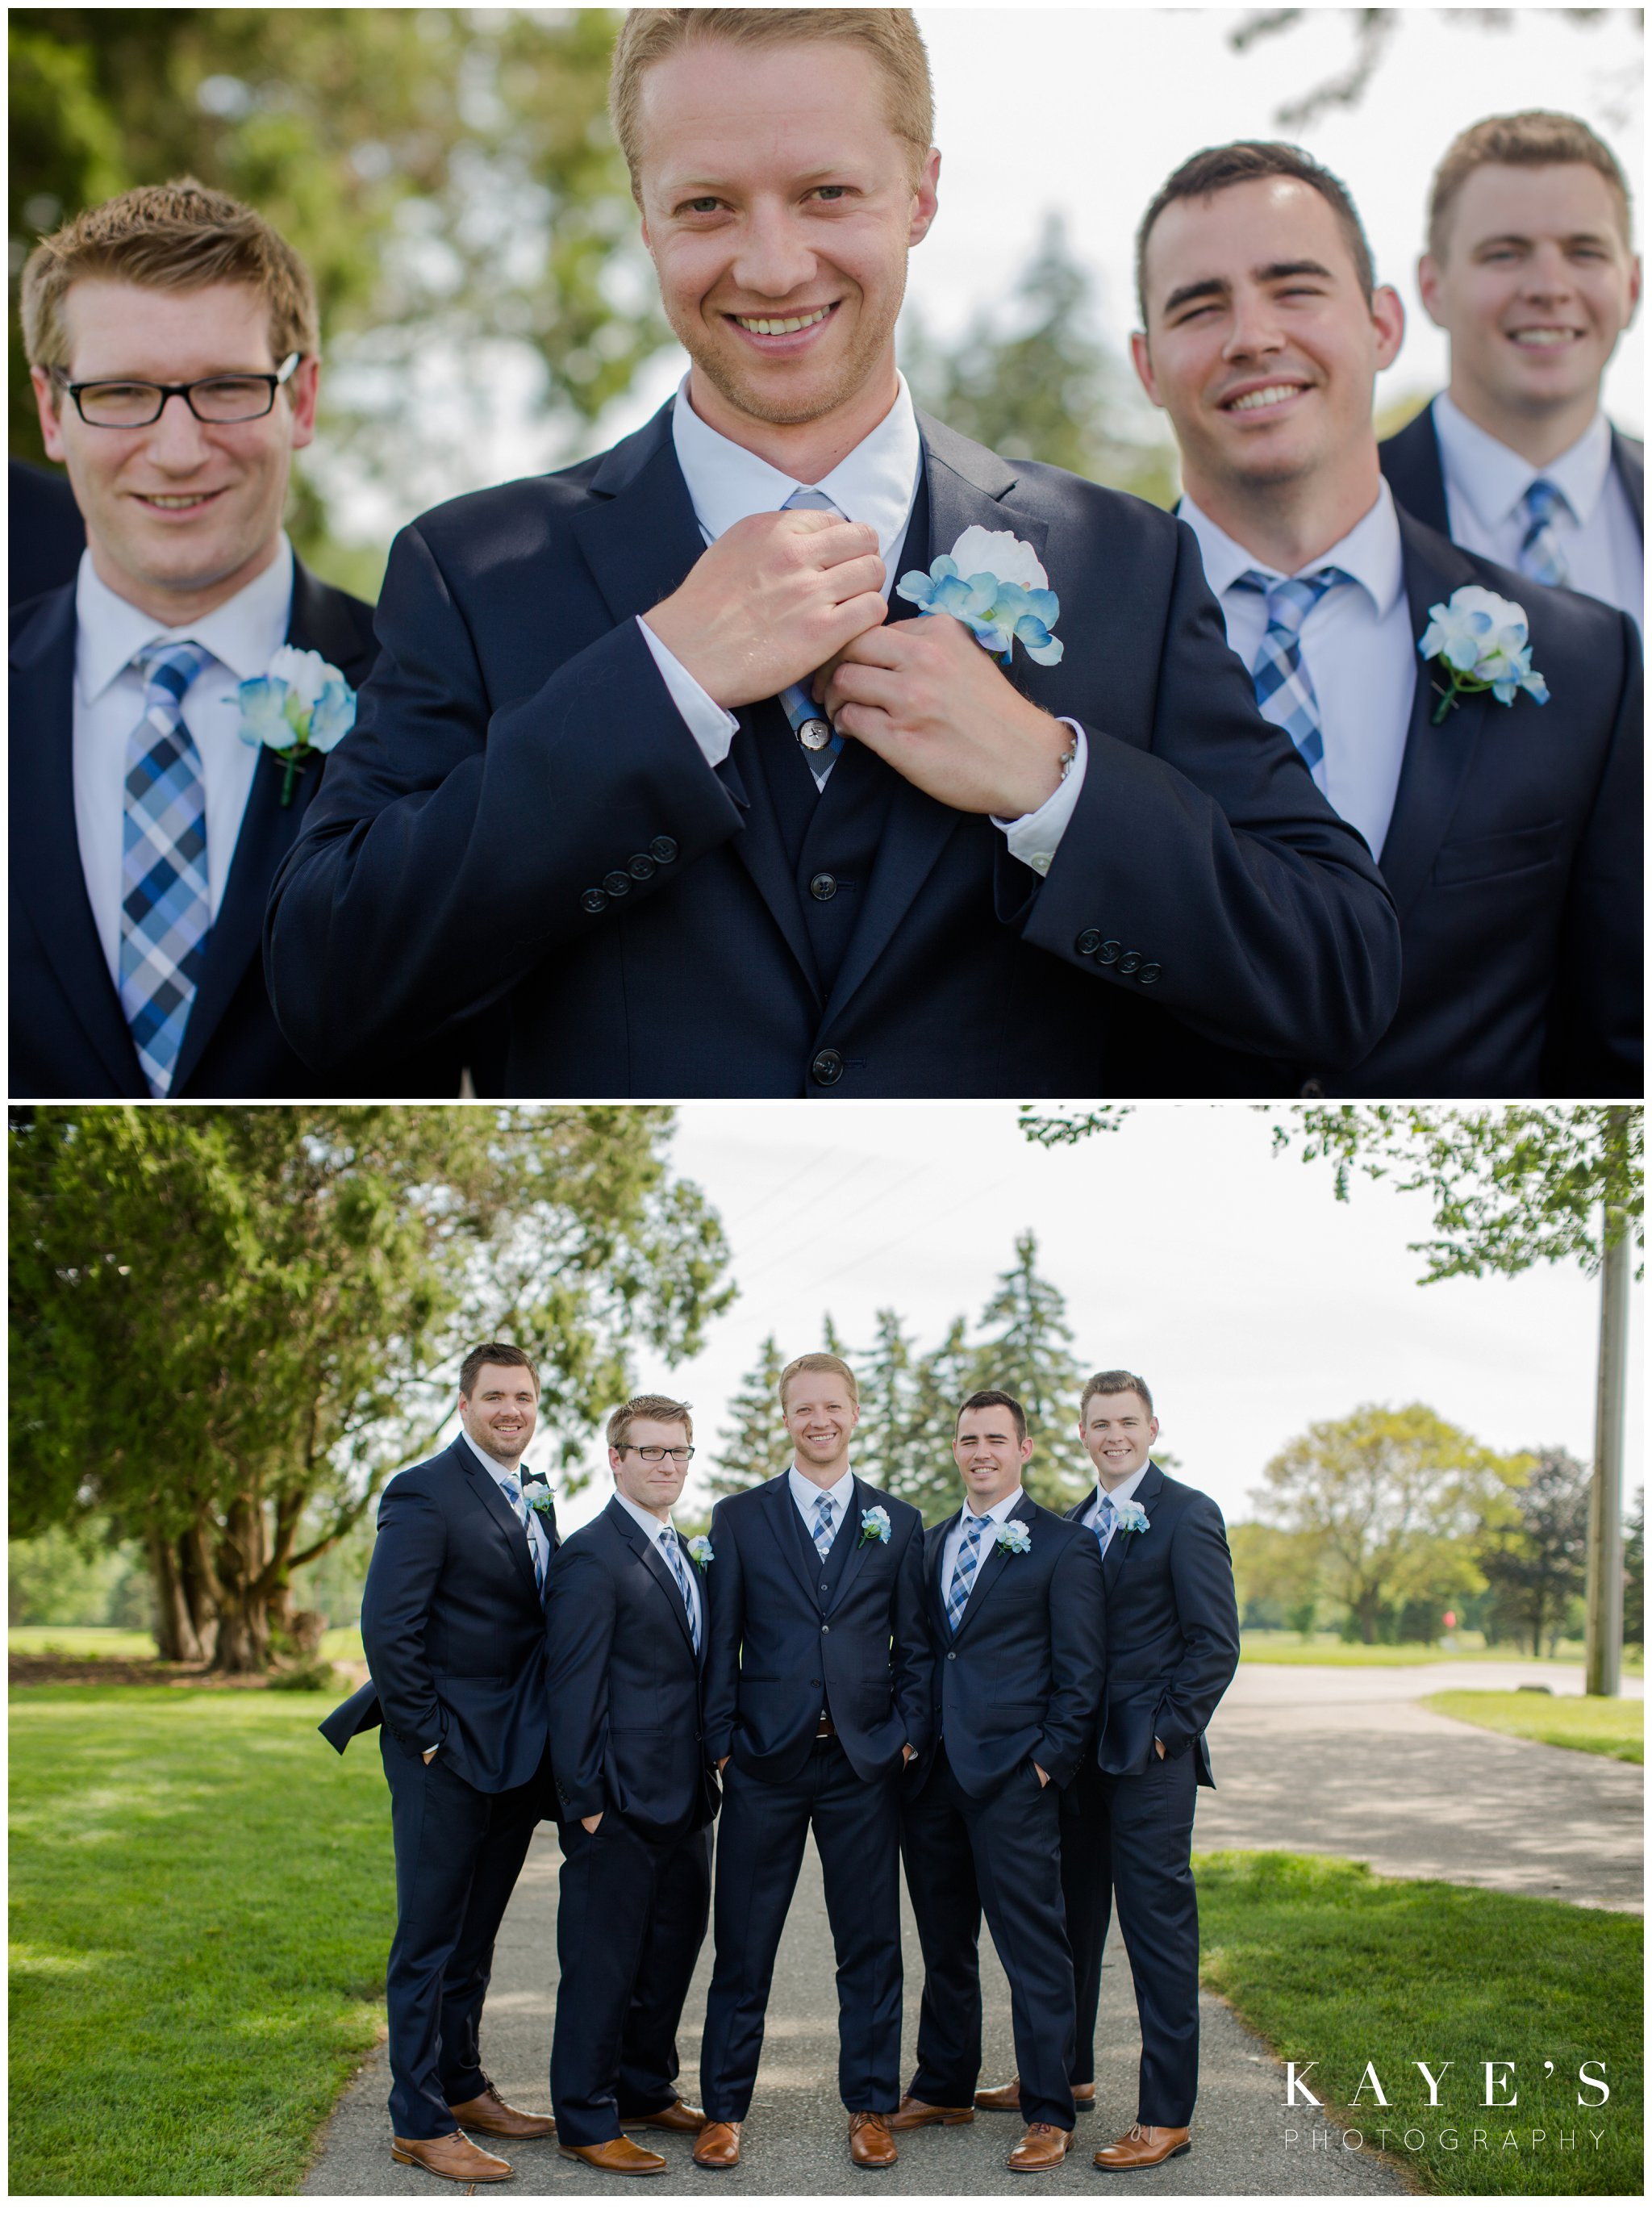 close ups of groom and groomsmen during wedding portraits at golf course wedding